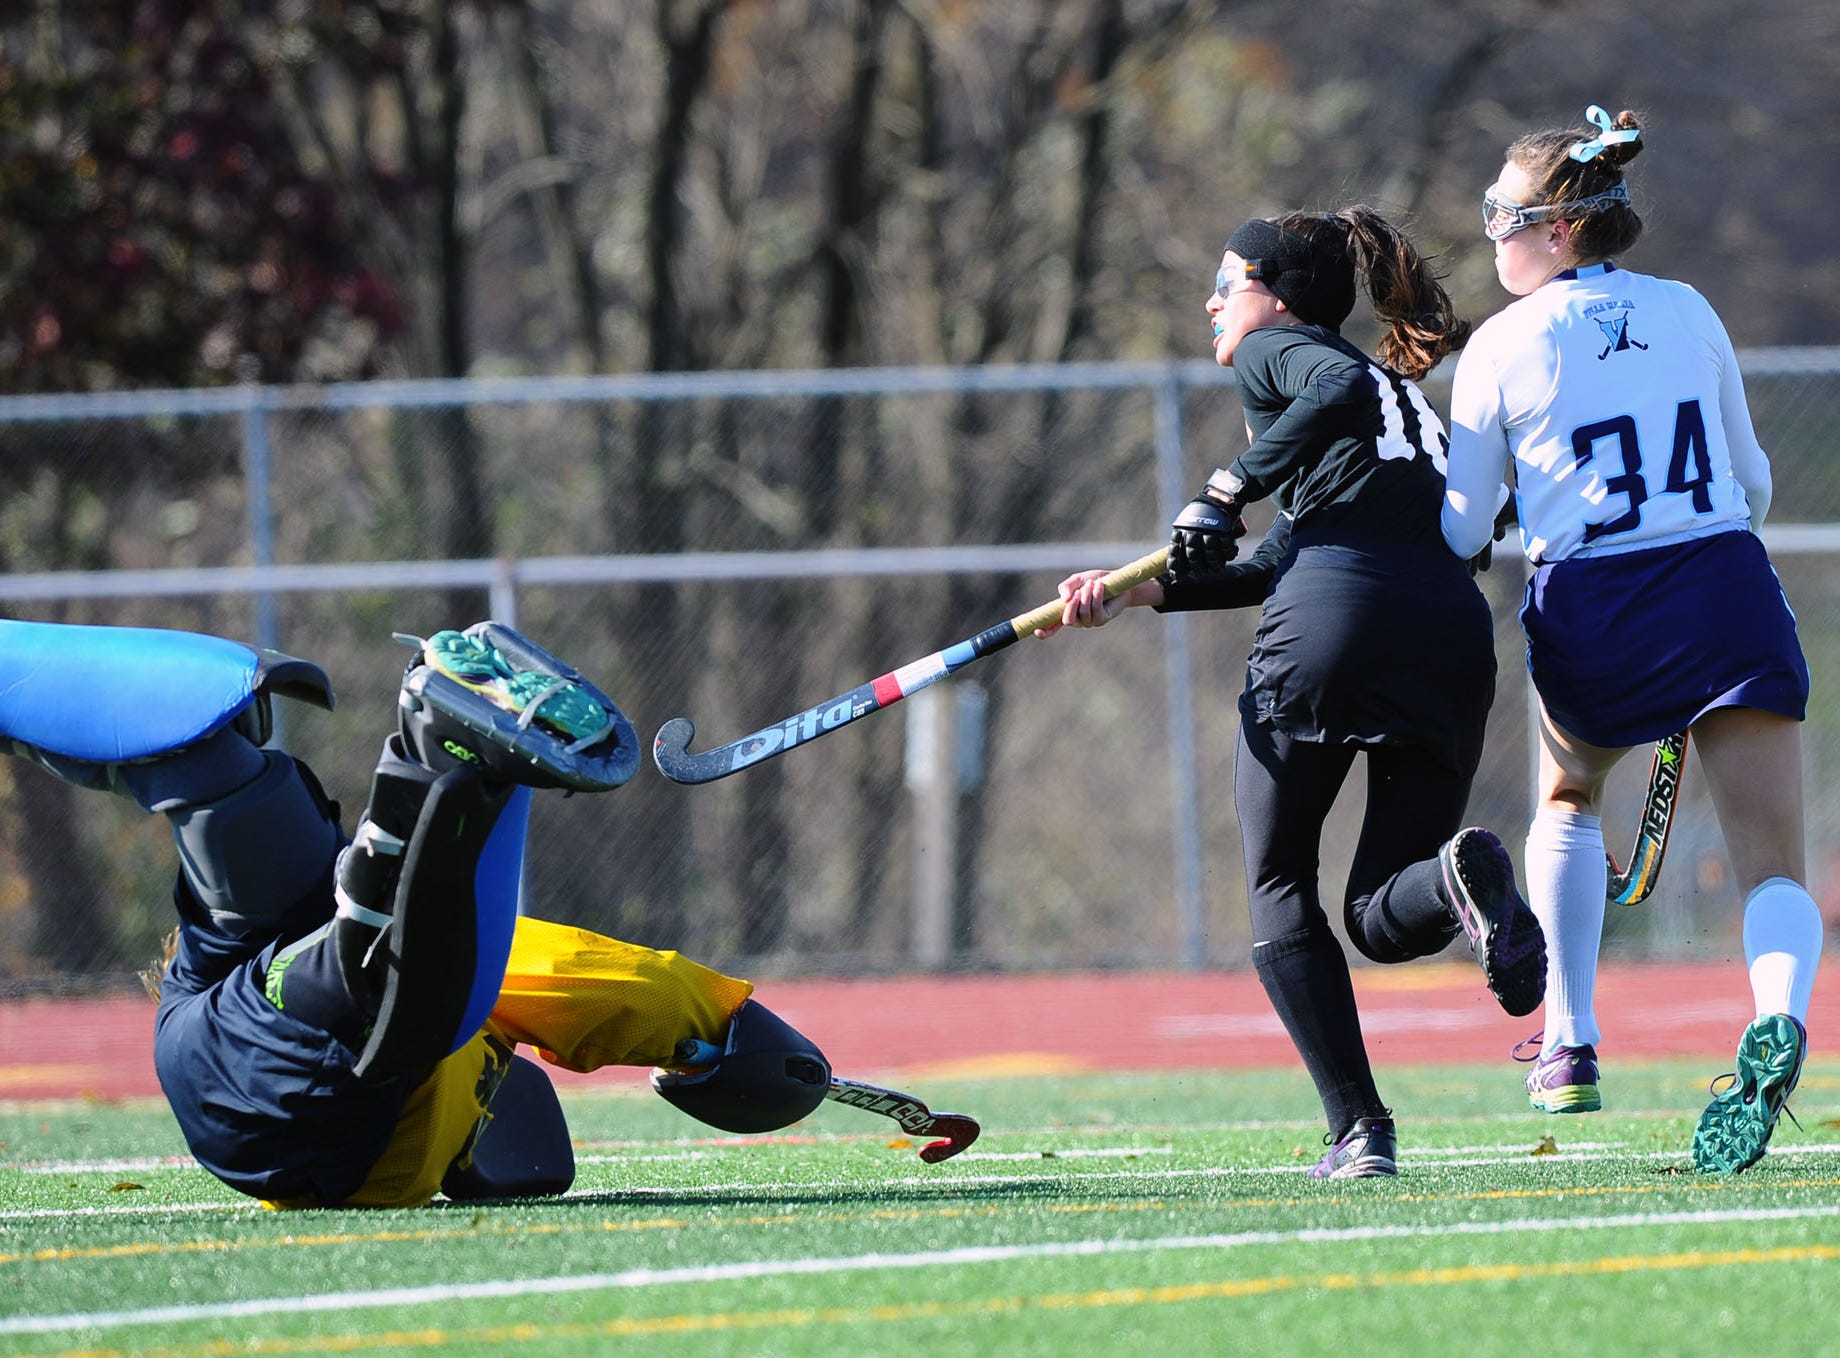 Mia Julian (18) ties the game 1-1 in the first half shooting this shot past the Villa Maria goalie.  Photo Jeff Ruppenthal